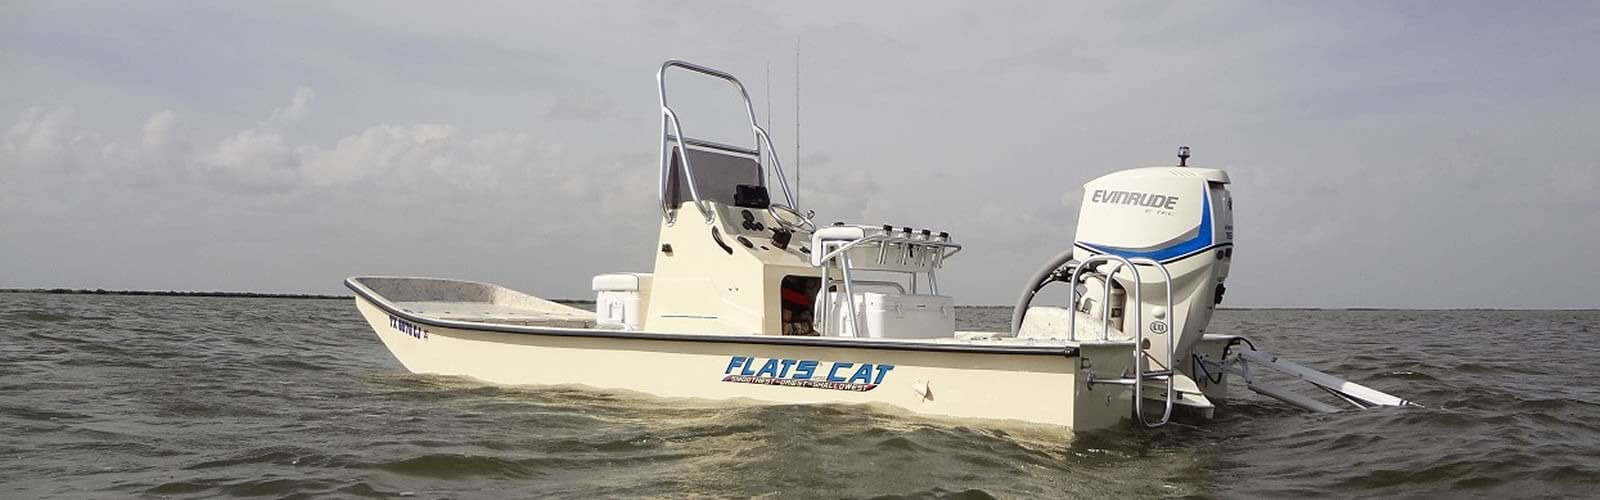 Flats cat boat shallow water catamaran flats fishing boat for Shallow water fishing boats